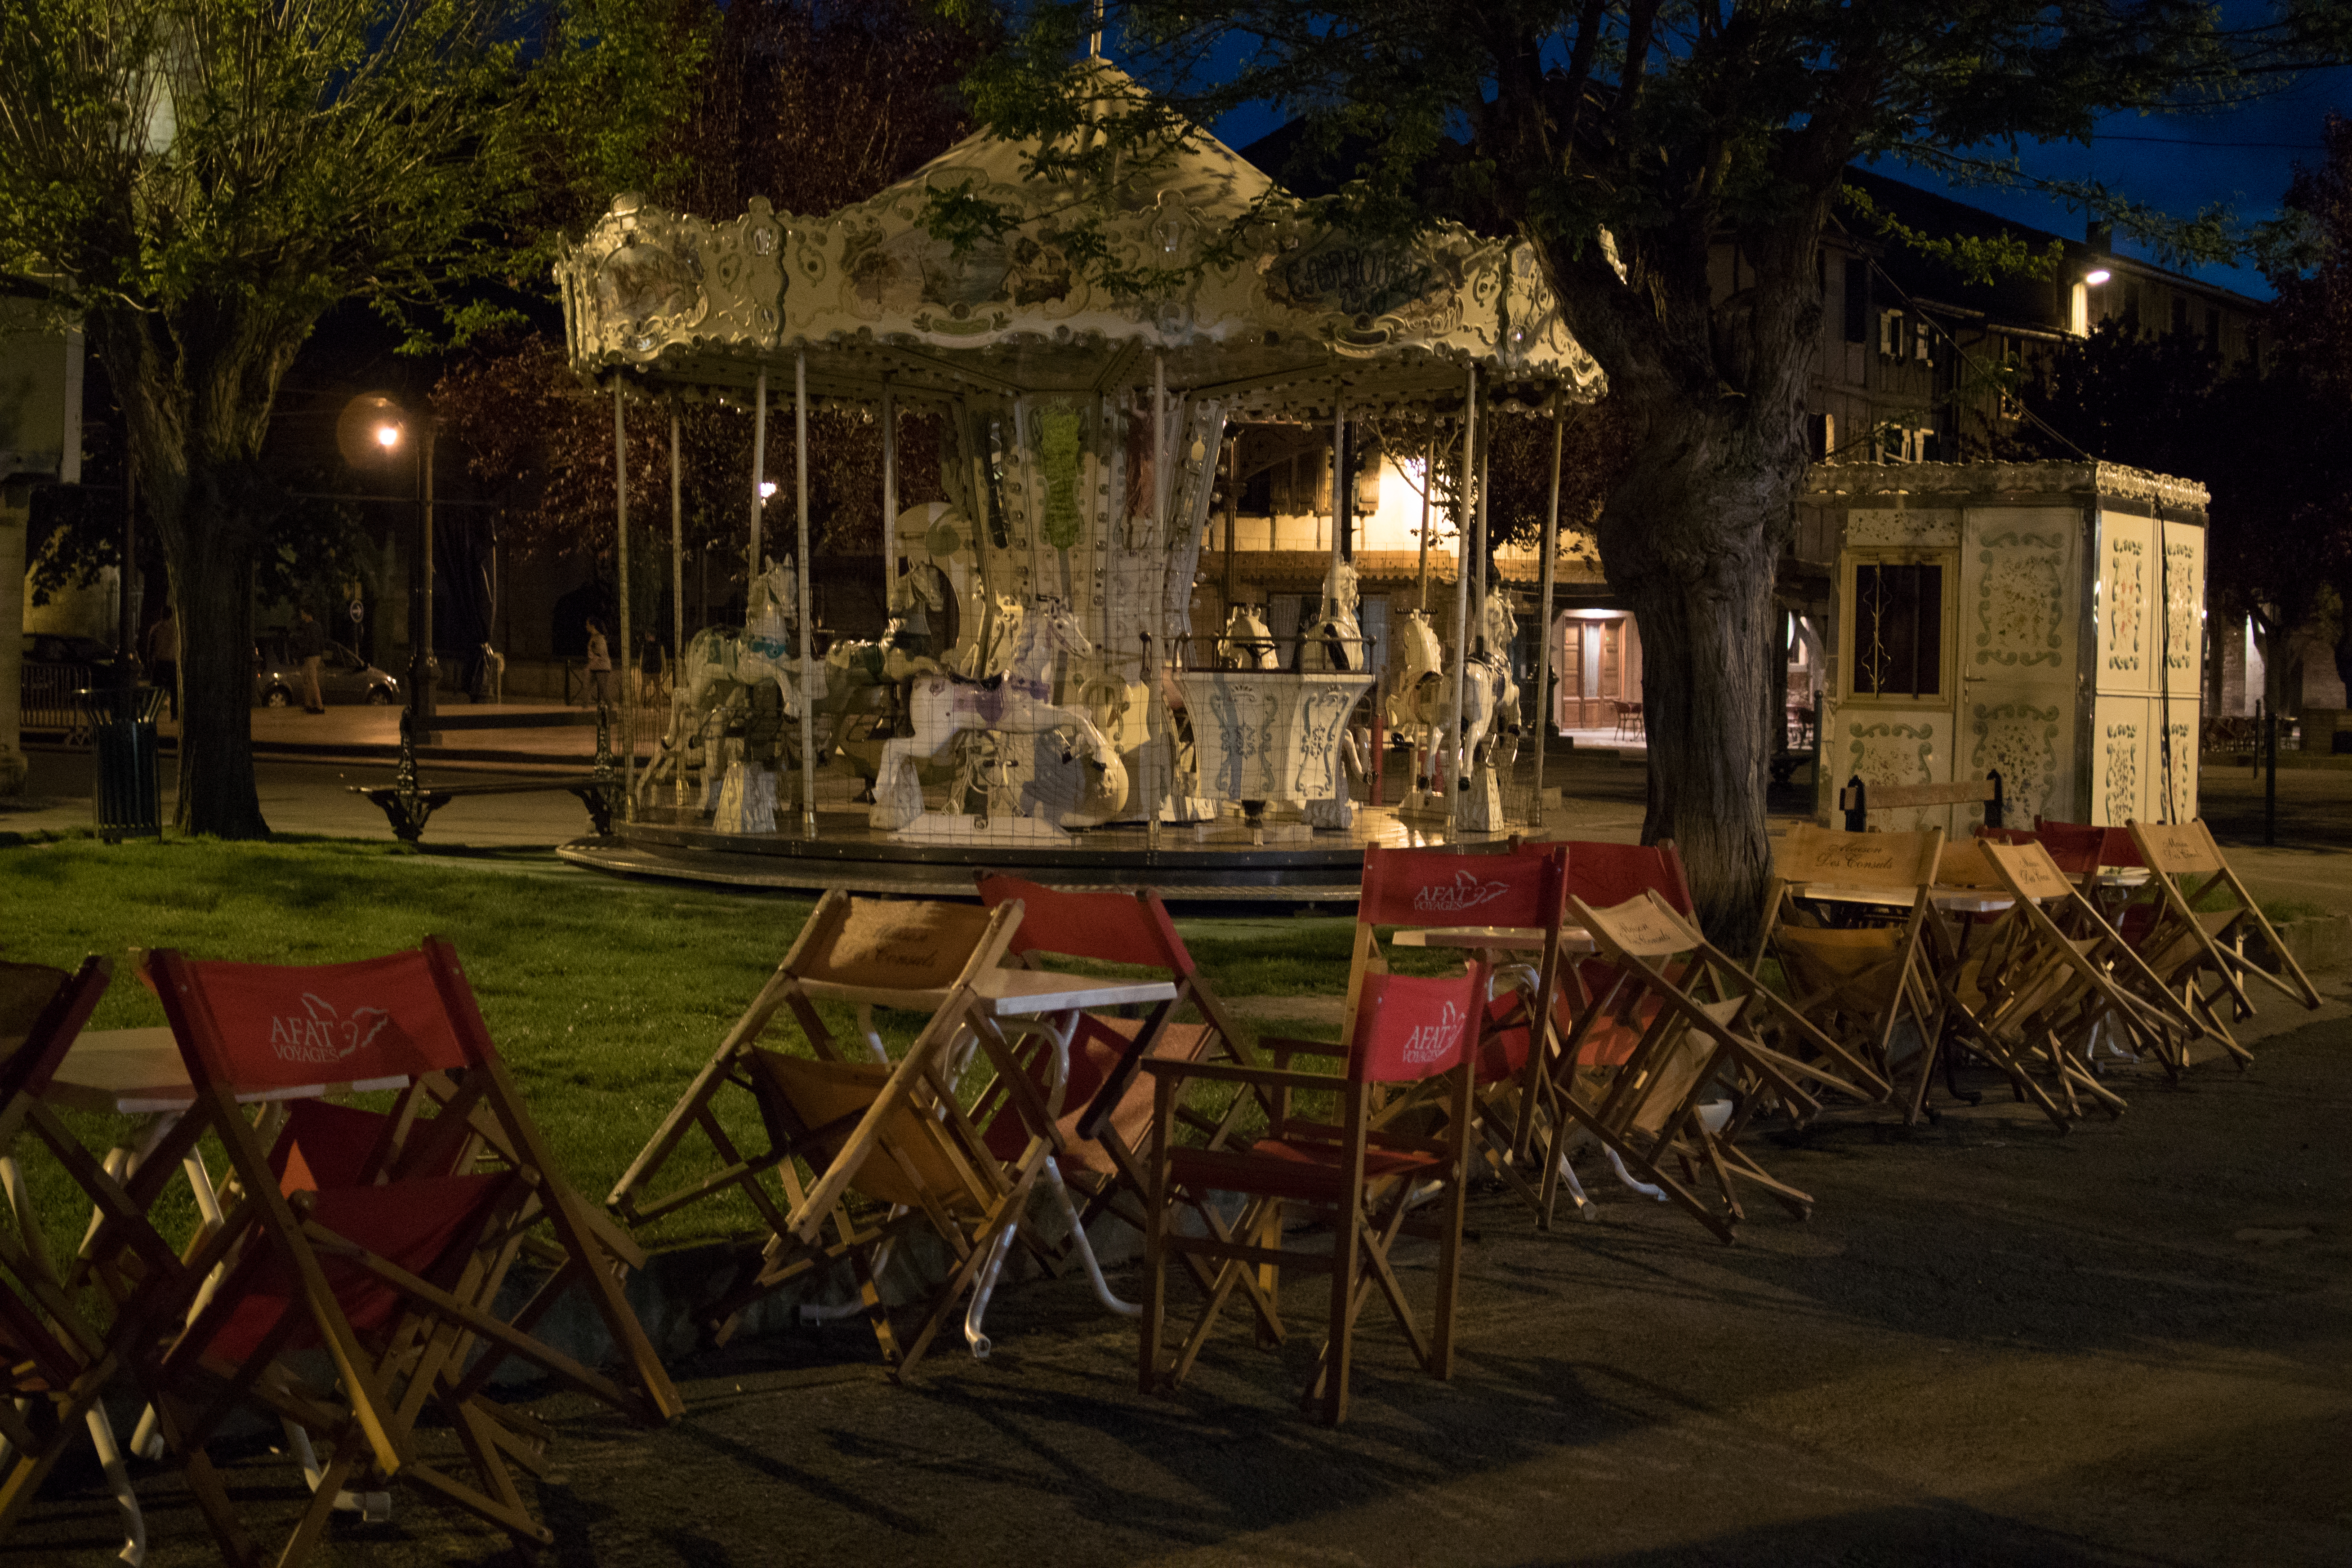 Merry Go-Round at Night in Mirepoix